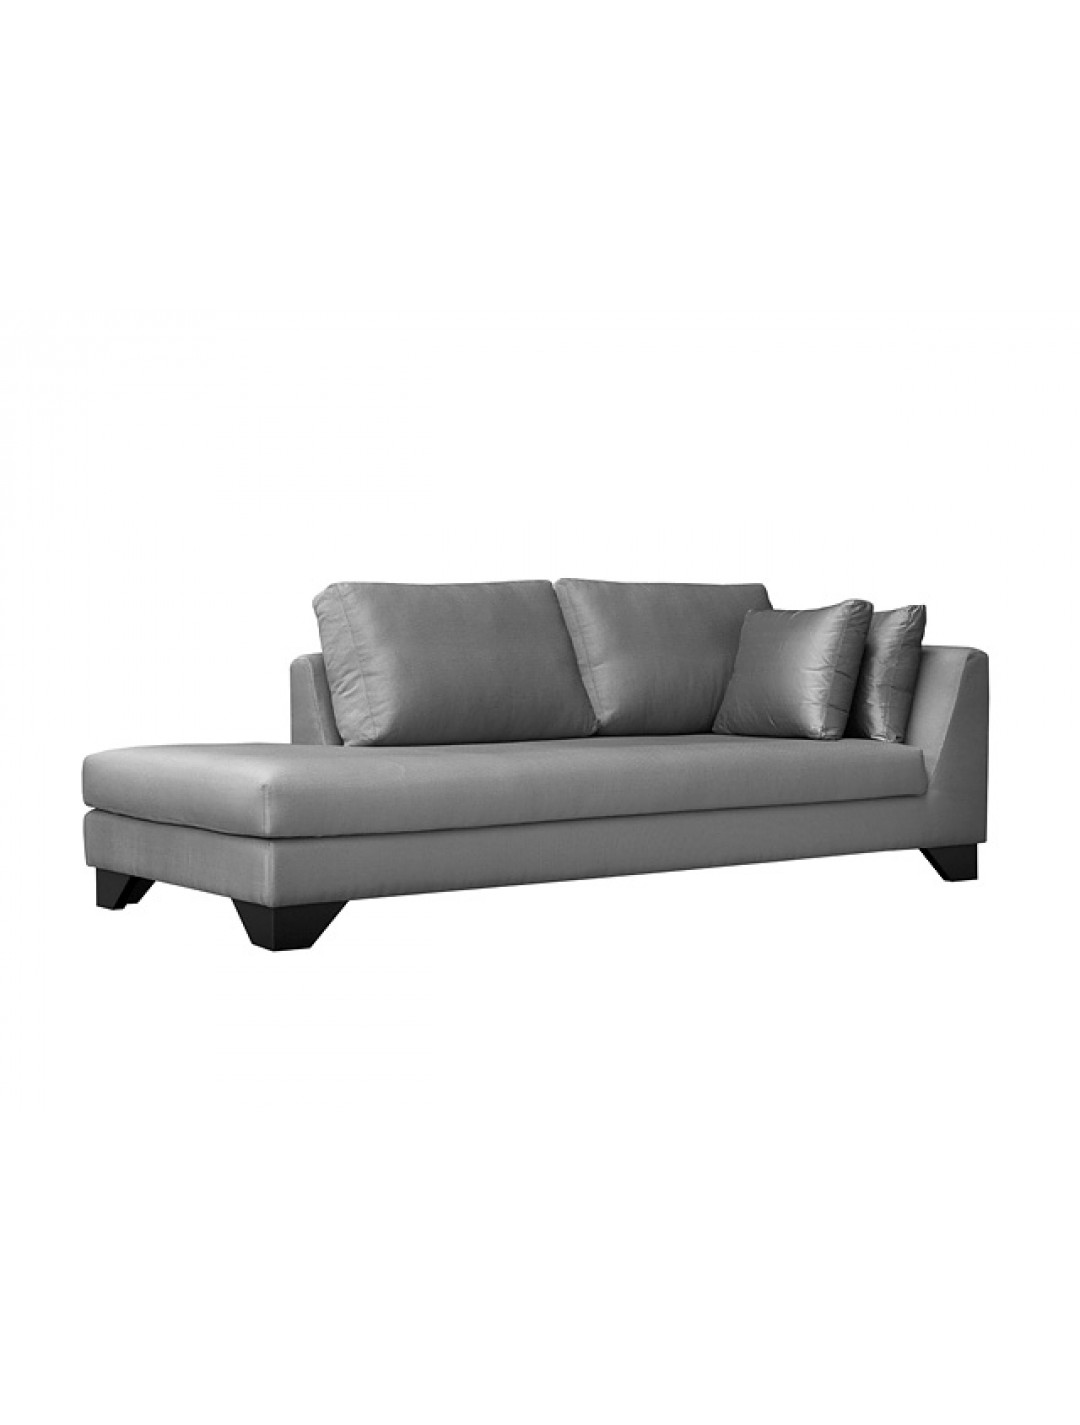 Dune 245 cr cm chaise longue upholstery without fabric for Chaise 60 cm